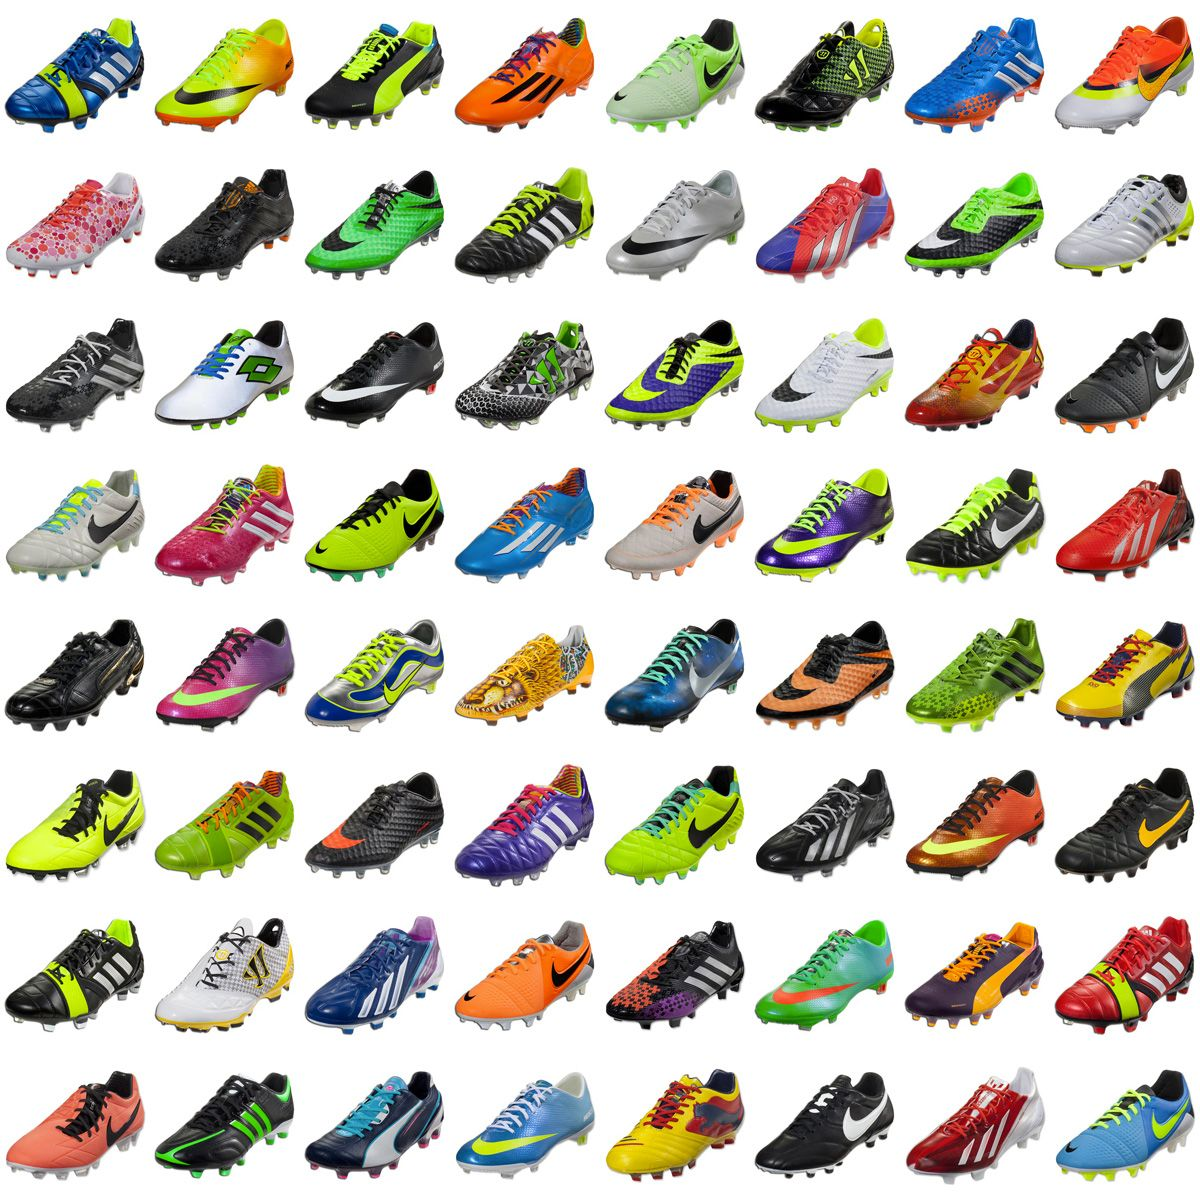 Some of the most popular #soccer #cleats of 2013. Which was your favorite